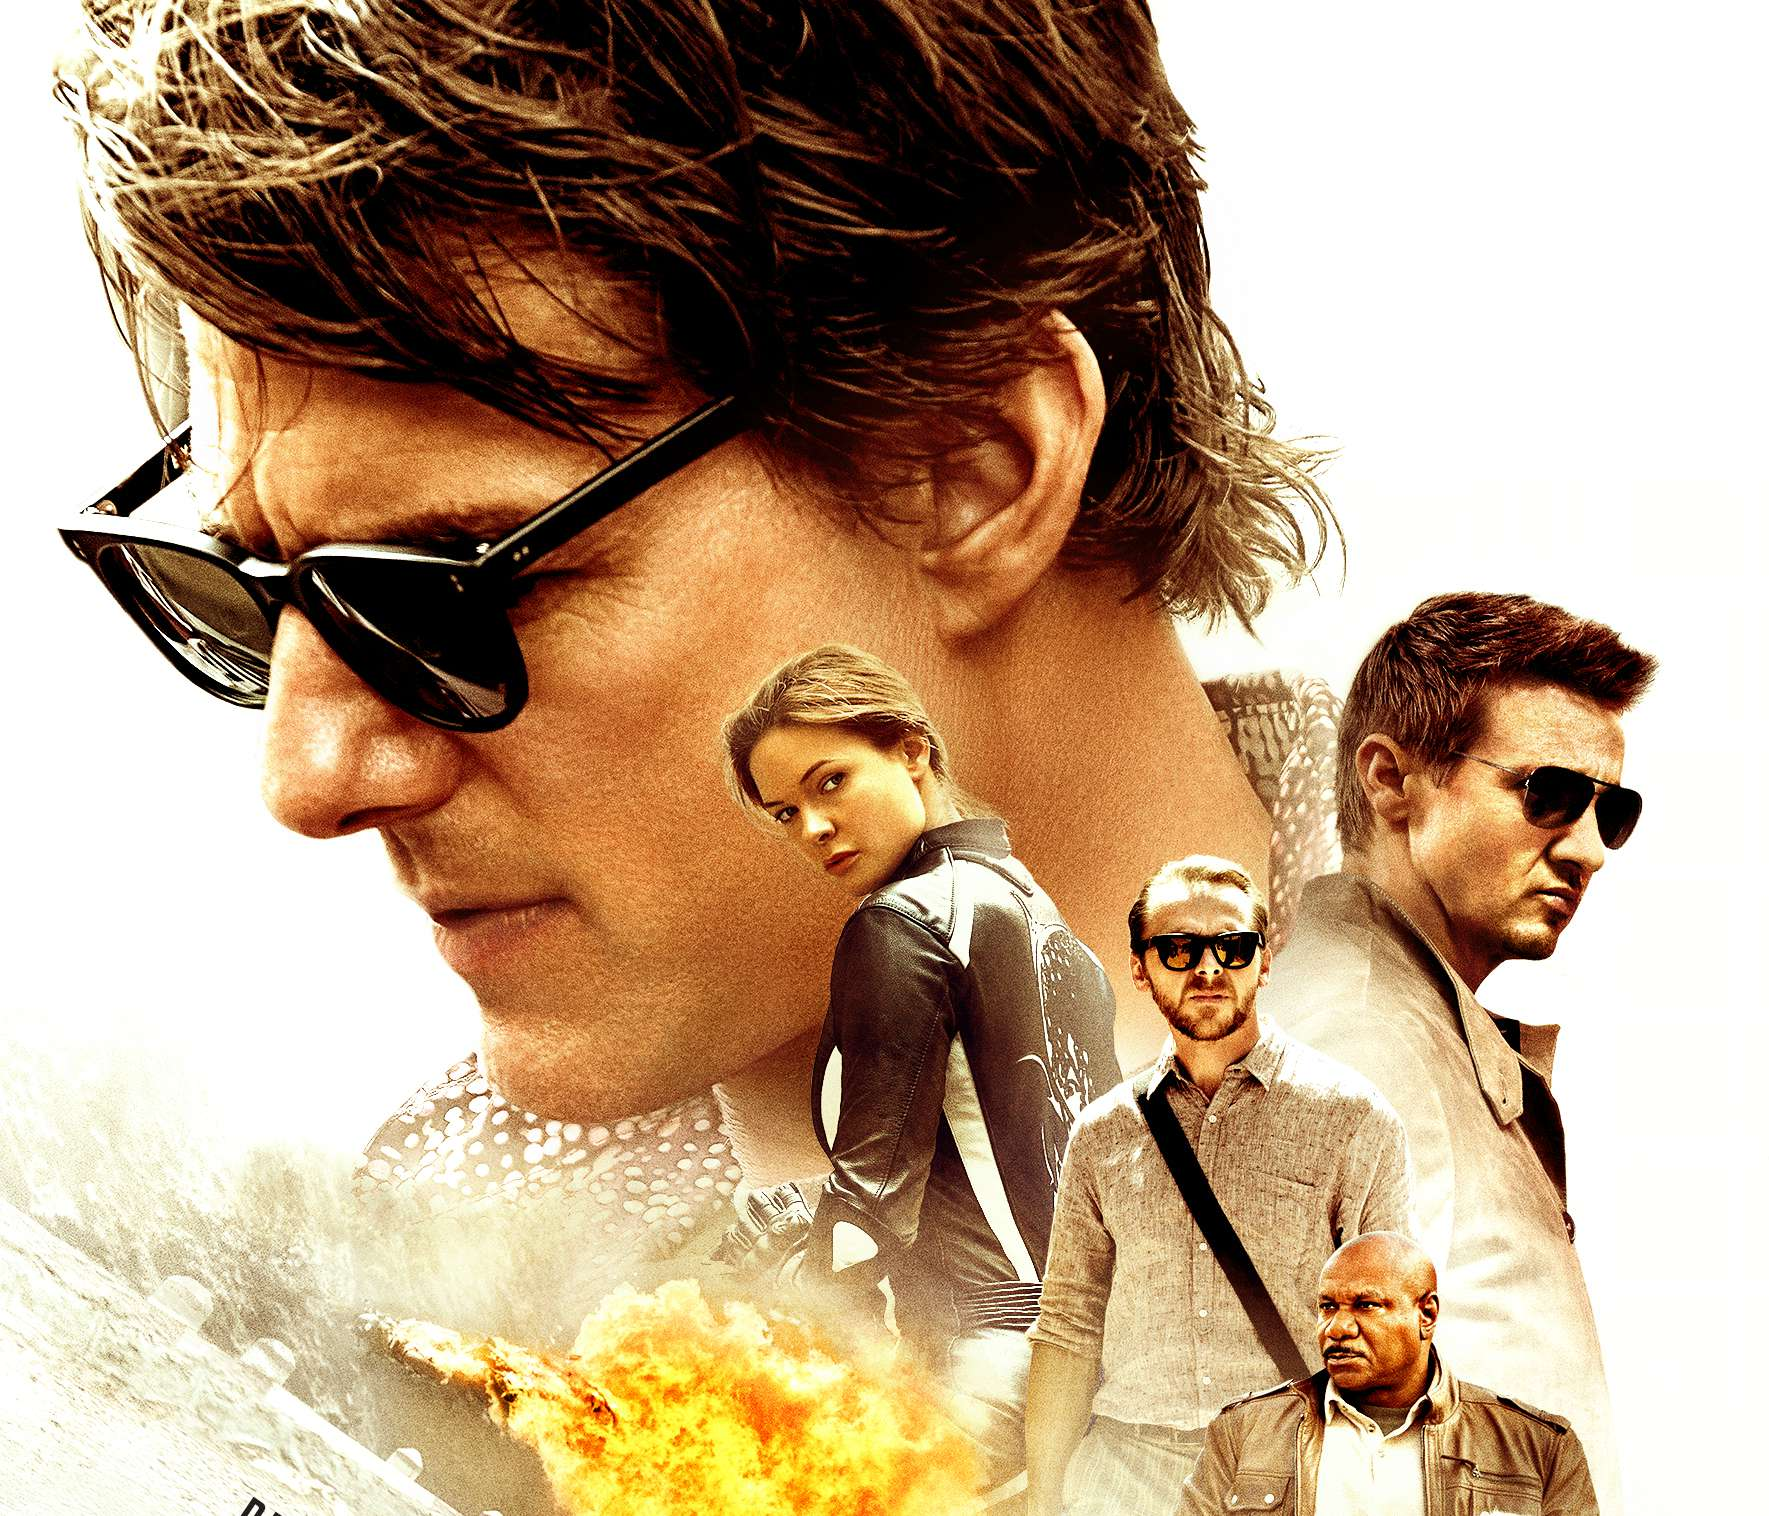 Tom Cruise in Mission: Impossible Rogue Nation Offers The Summer's Best Thrill Ride @MissionFilm #MissionImpossible #Mompossible #spon